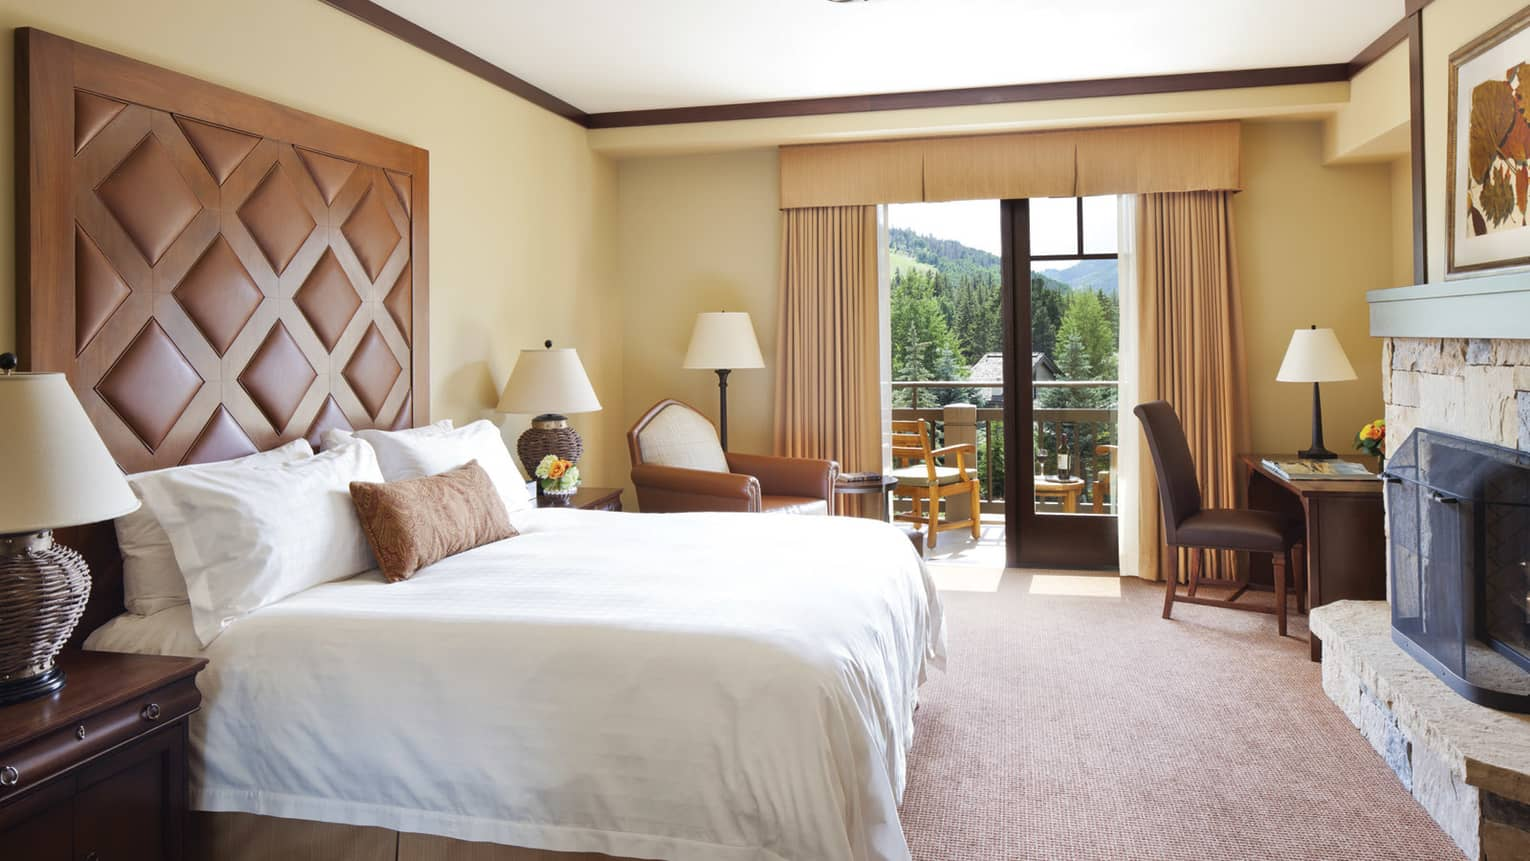 Sunny Mountain-View Room with bed, tall wood-and-leather headboard, open balcony door